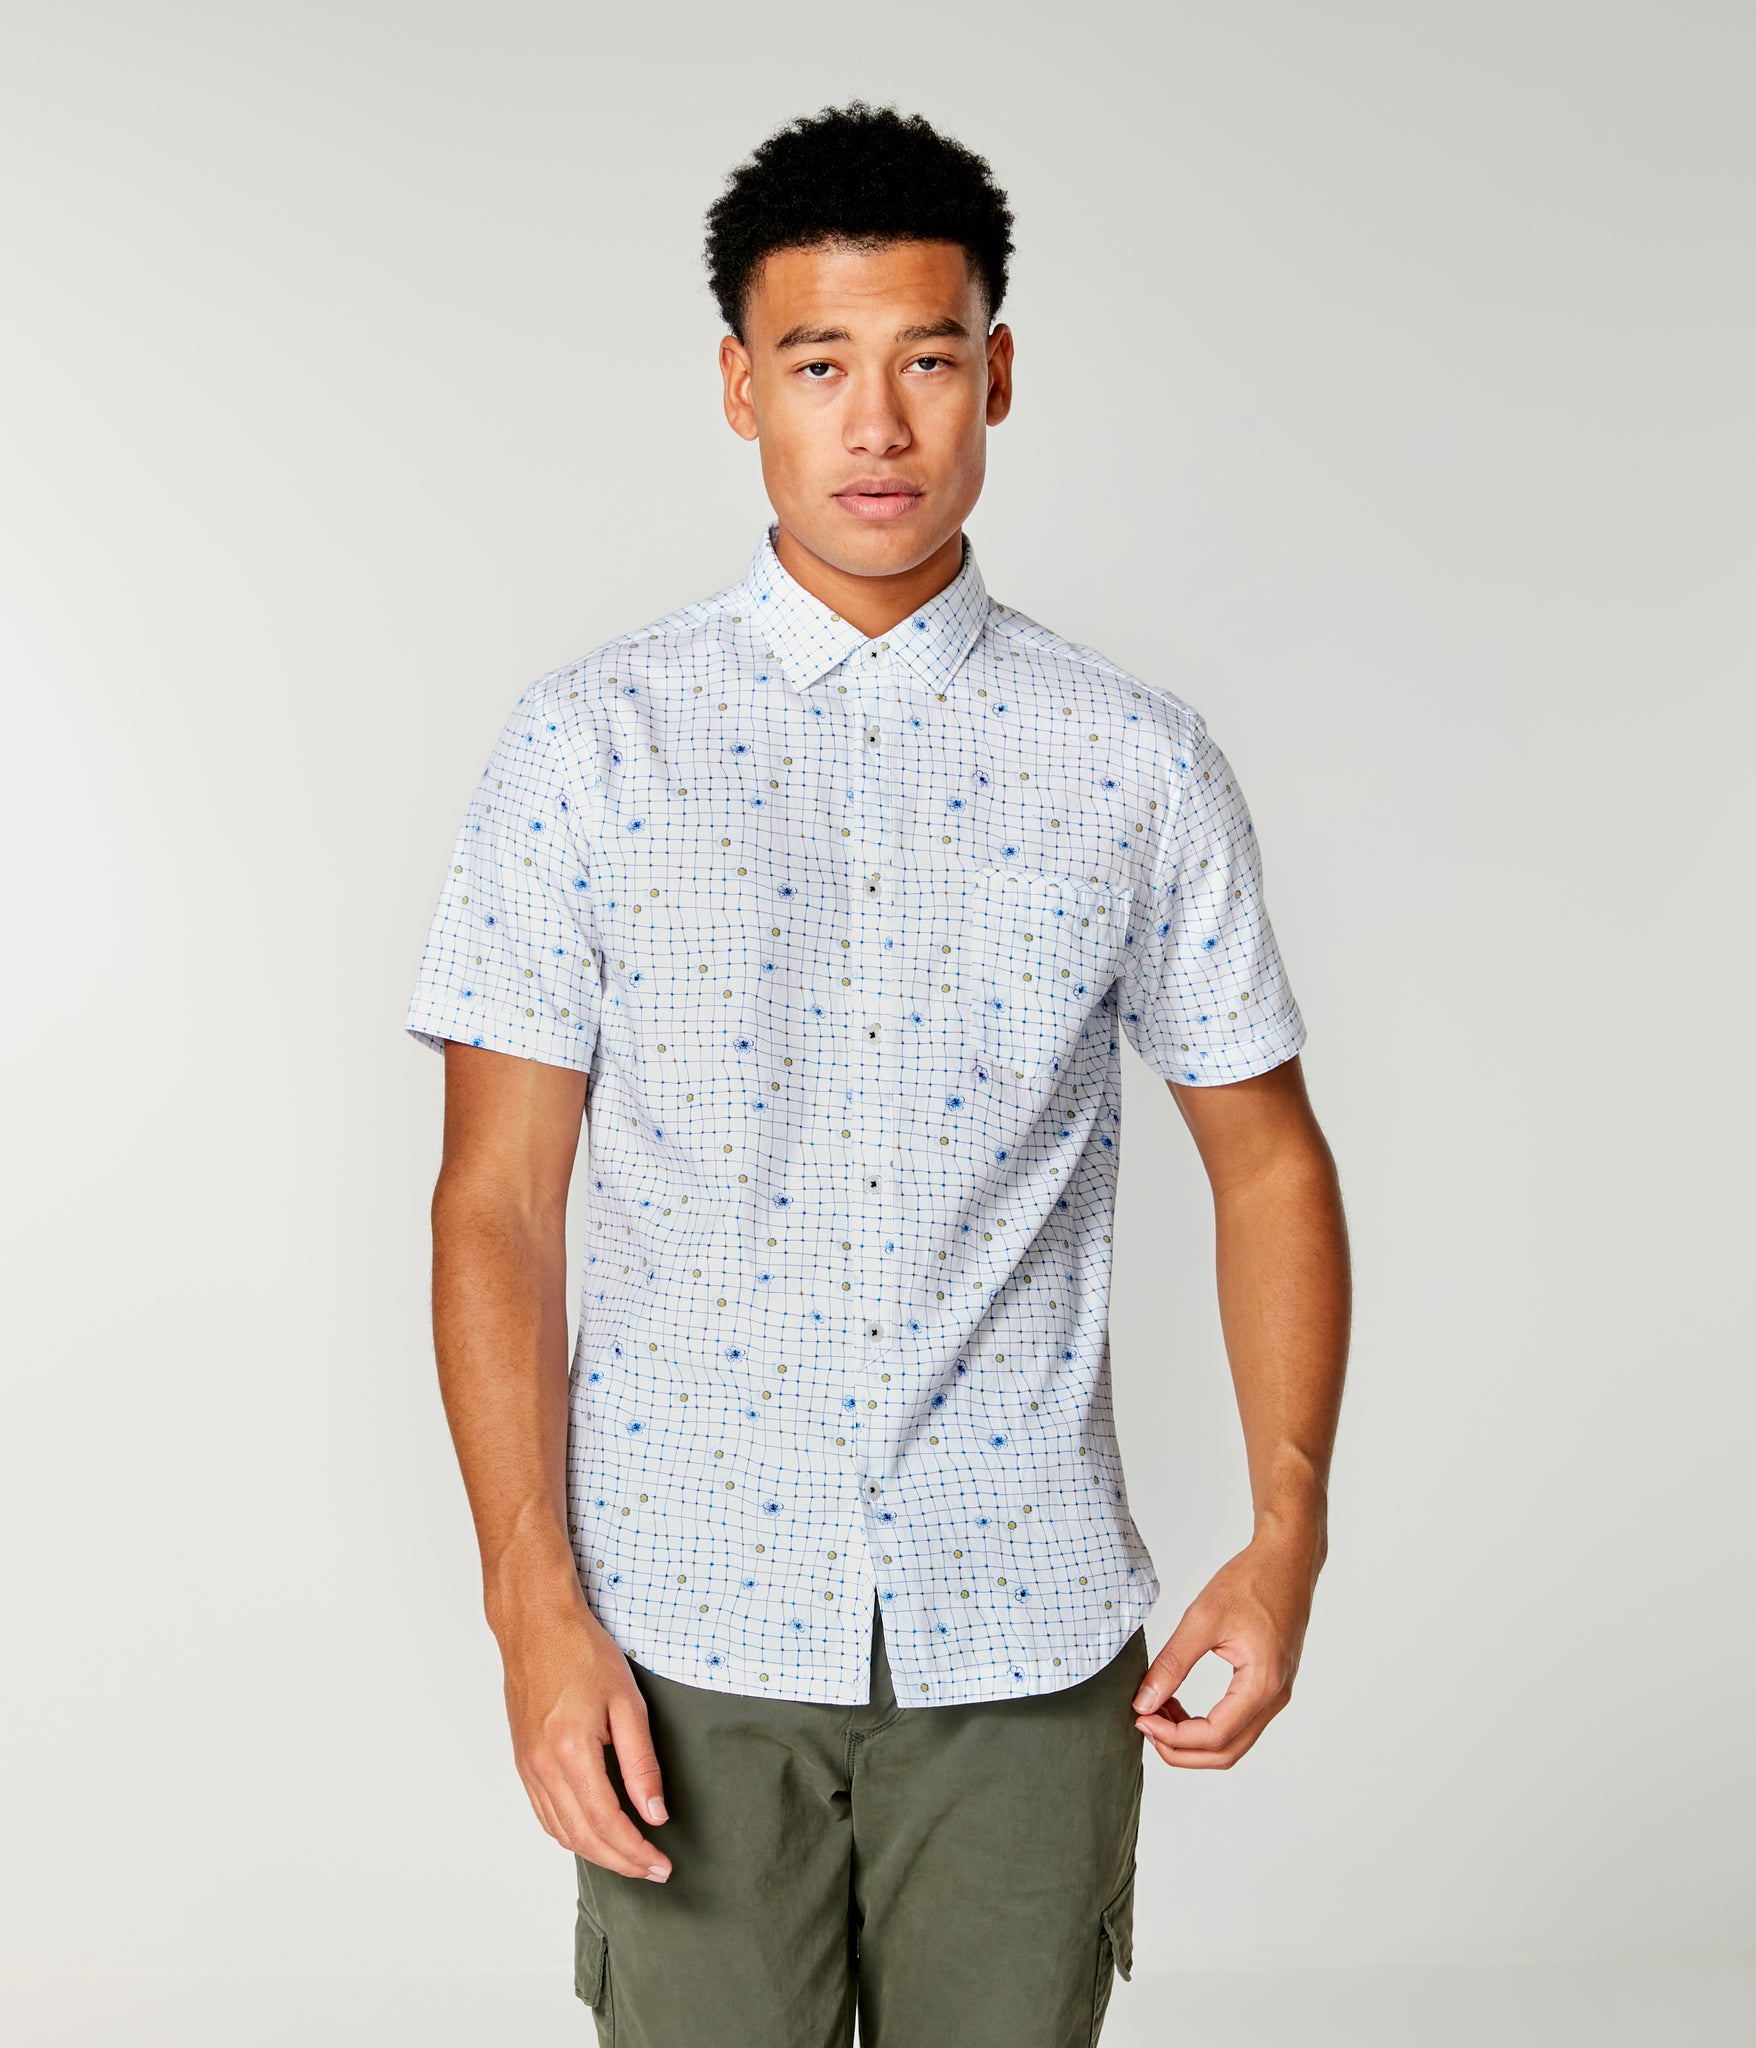 On-Point Print Shirt Short Sleeve - White Wrap Dot Floral